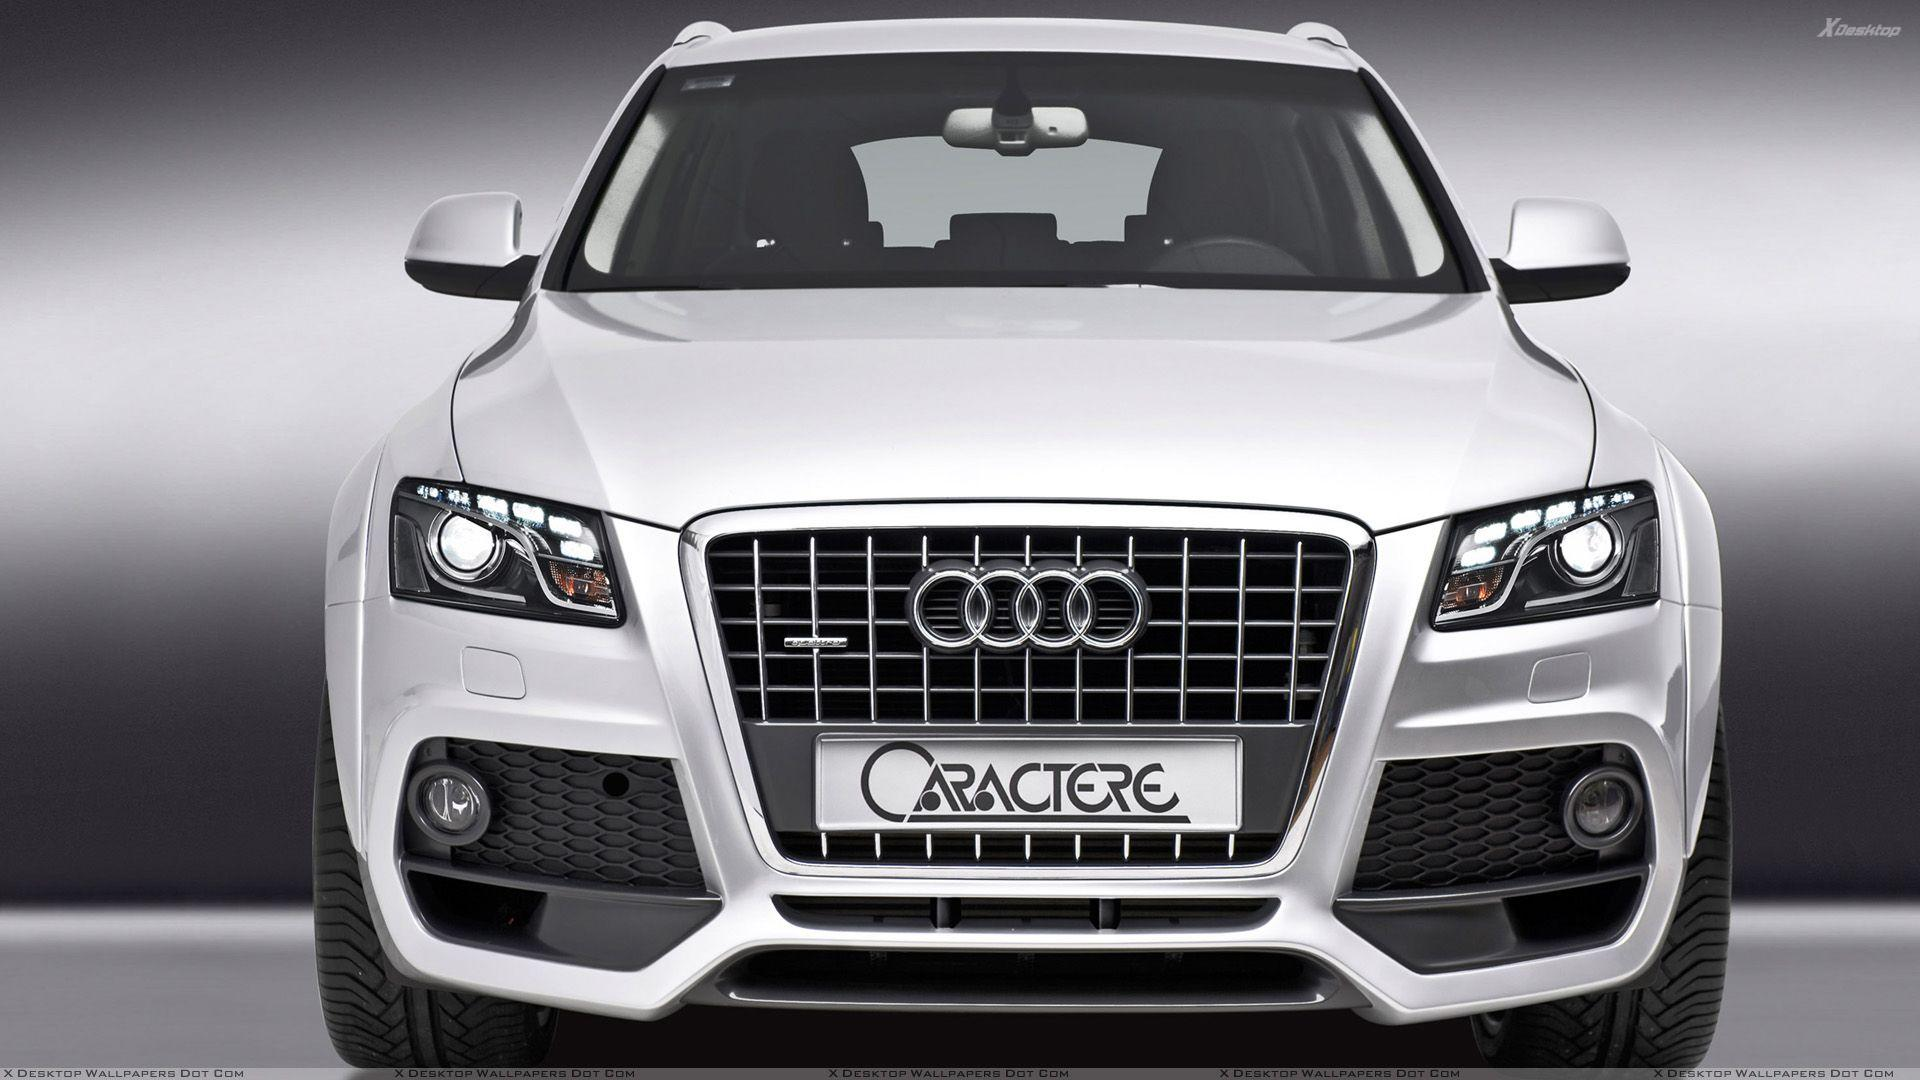 Audi Q5 Wallpapers, Photos & Images in HD